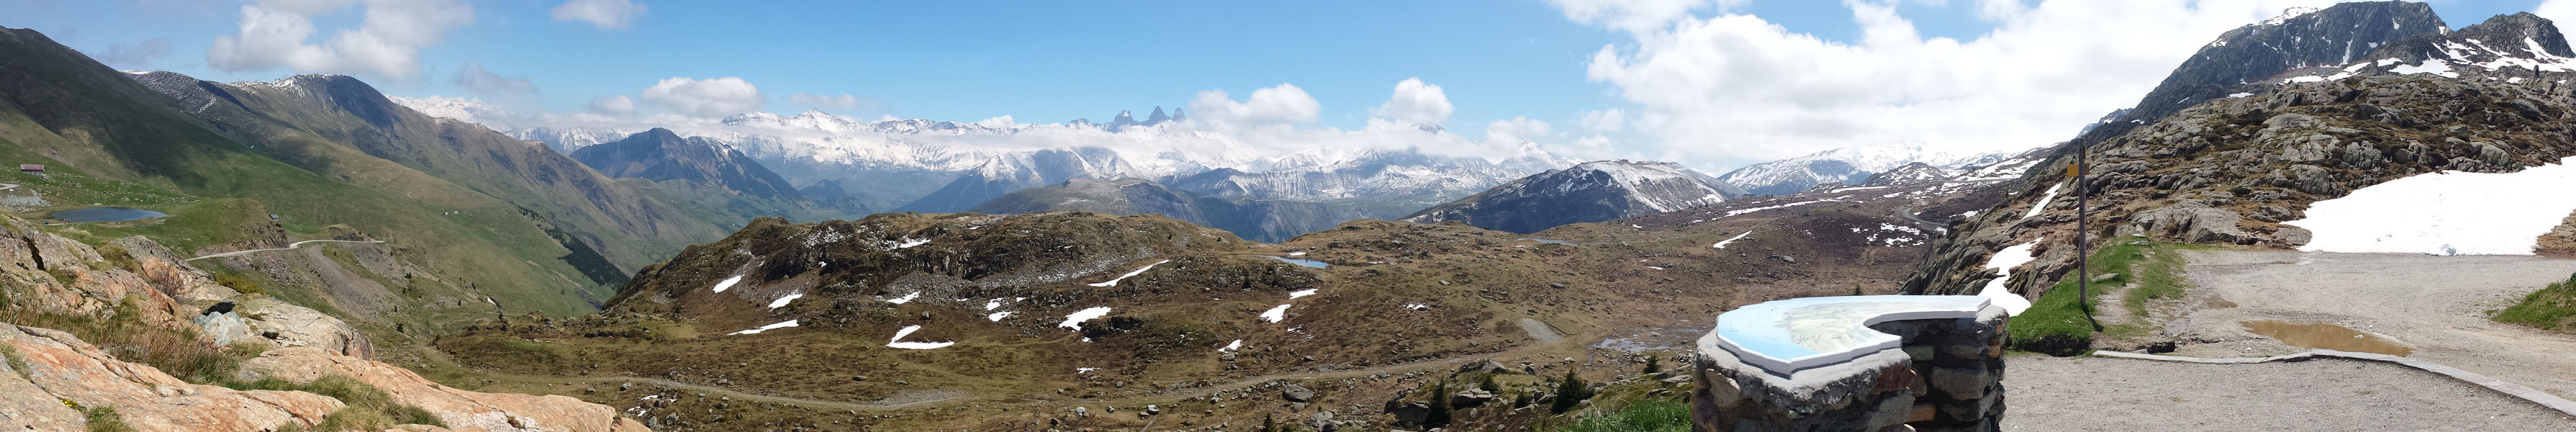 Panoramic view from the top of Croix de Fer, French Alps